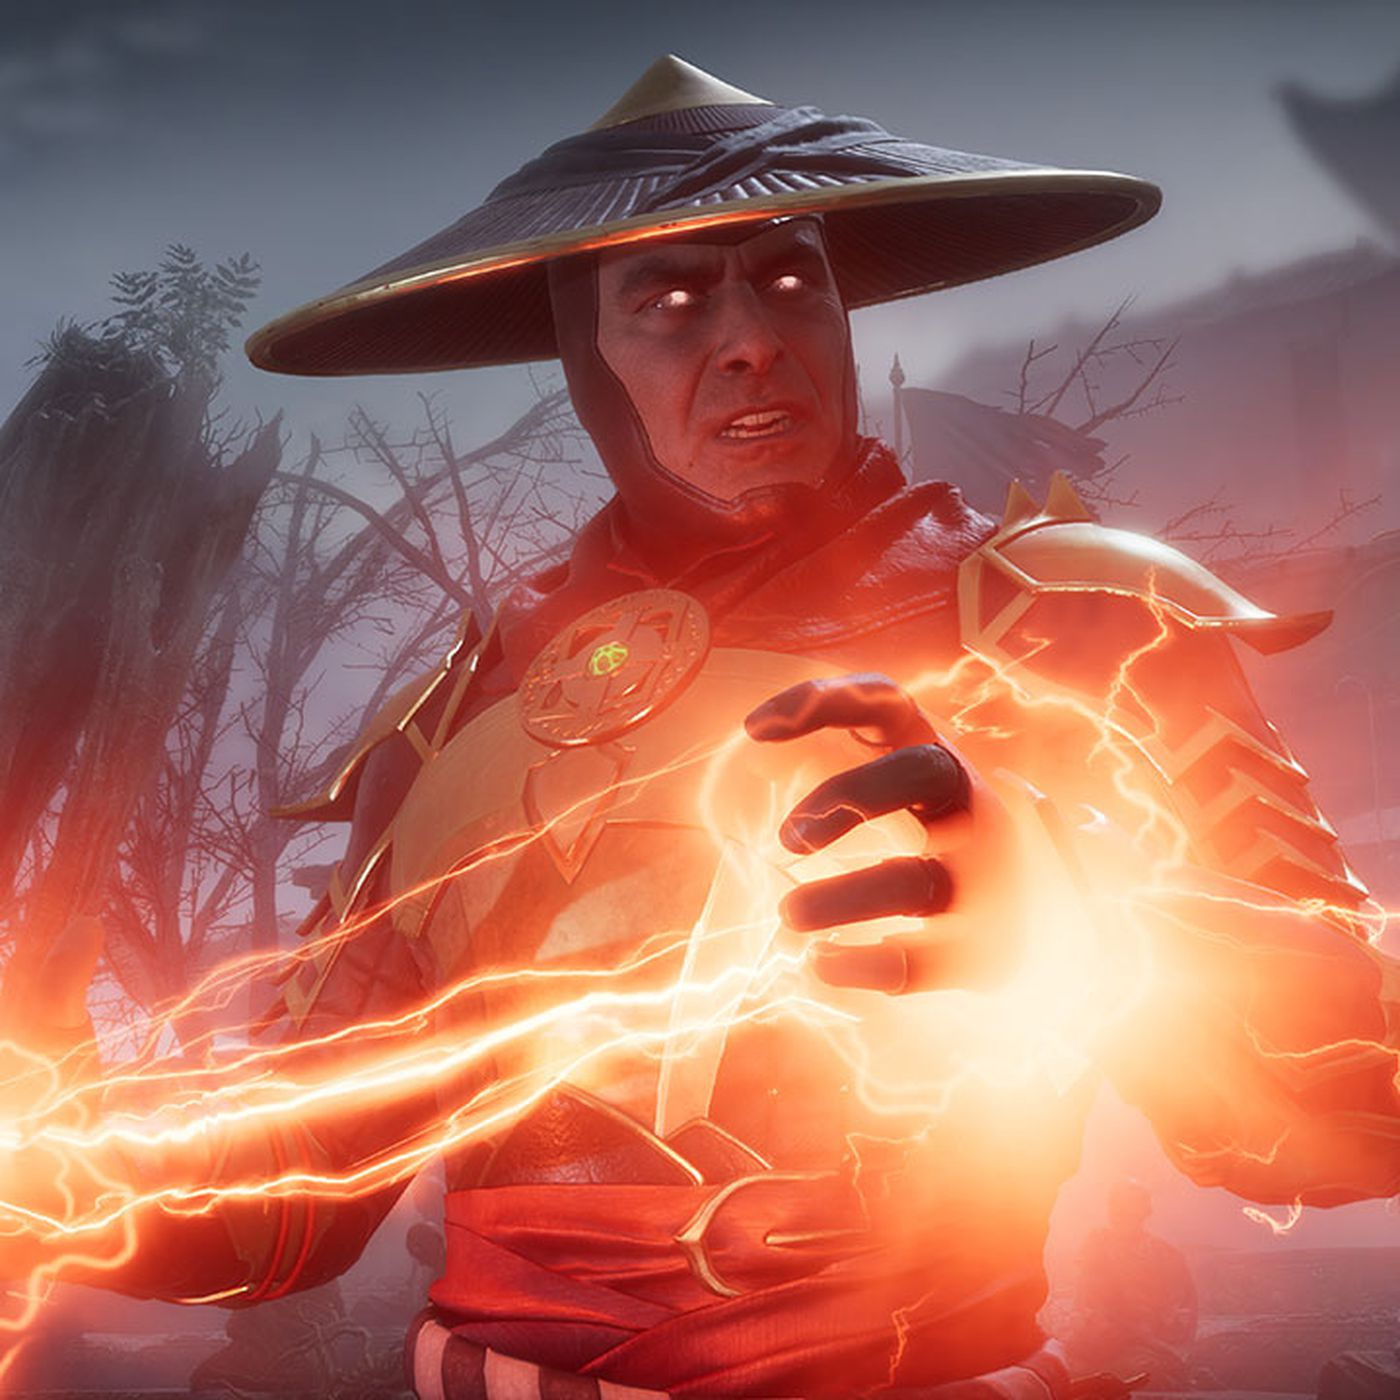 I Wrote Mortal Kombat 11 And I Abhor Violence Polygon